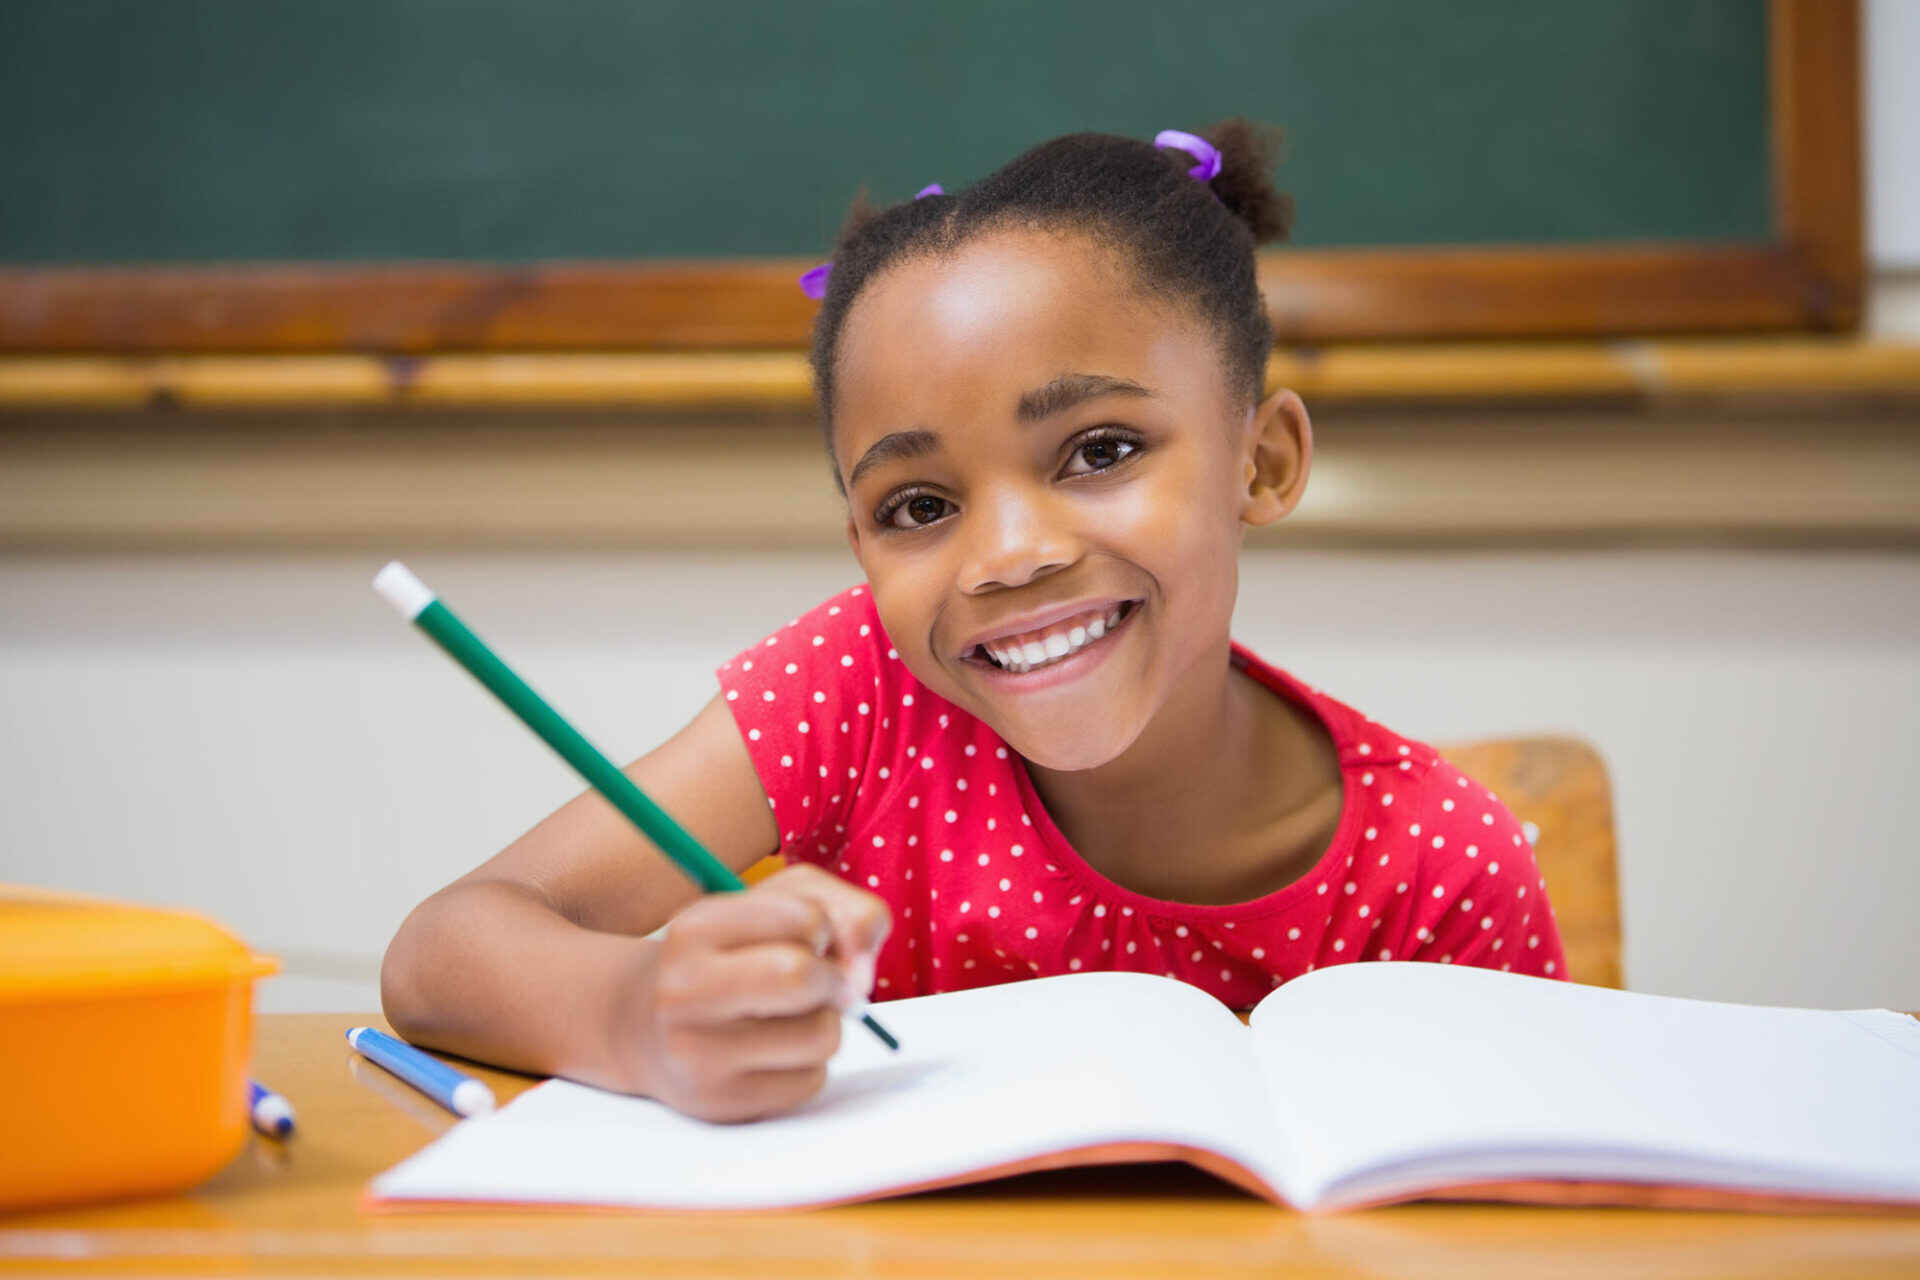 elementary school girl smiling holding a pencil